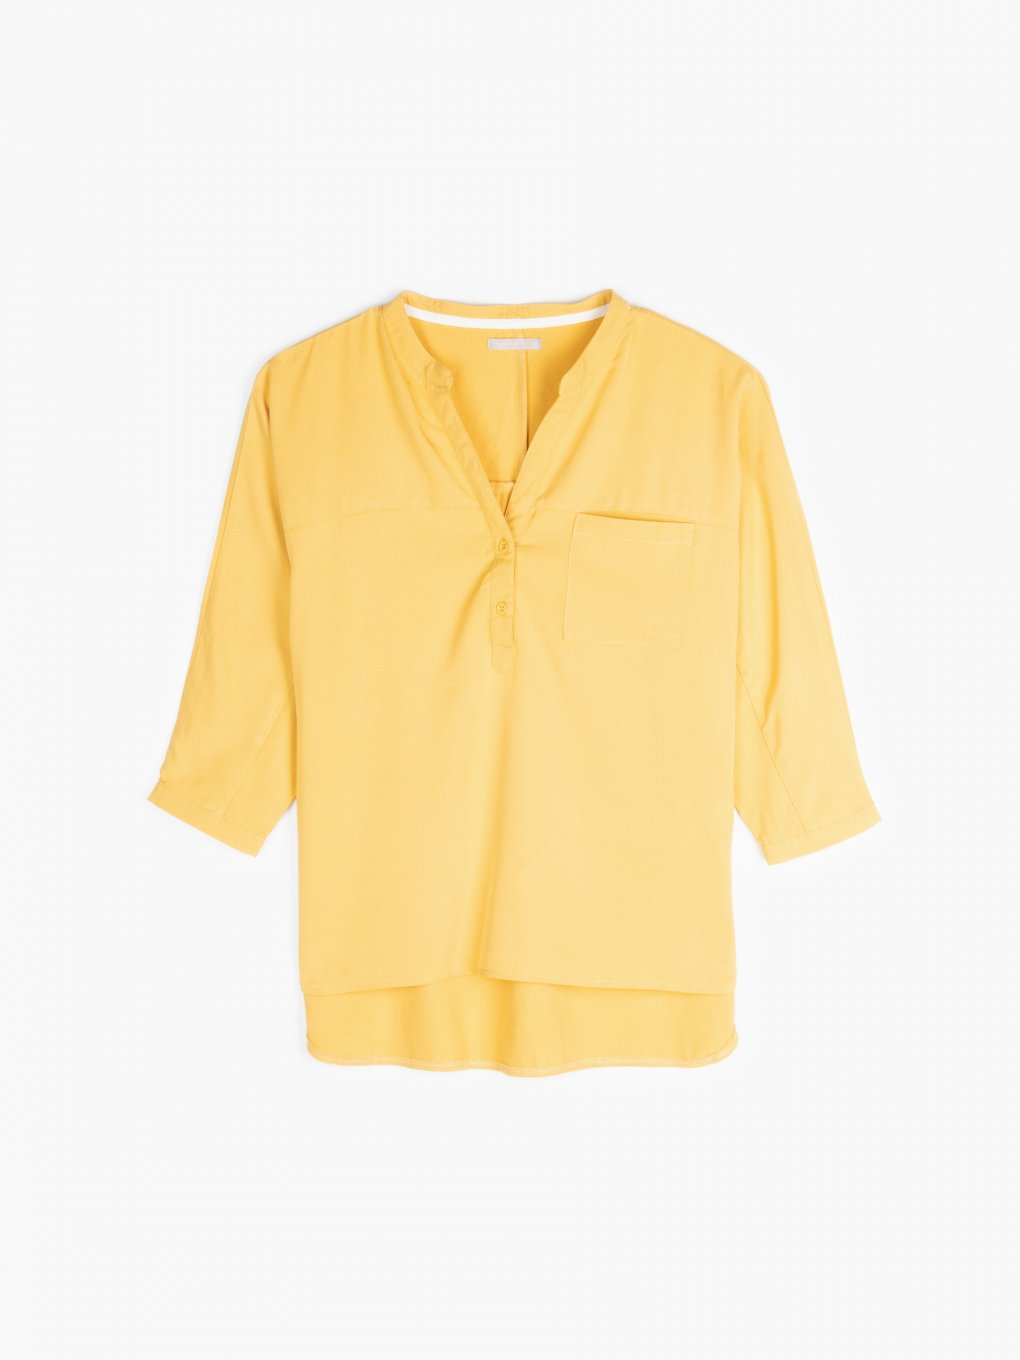 PREMIUM QUALITY: Lyocell blouse